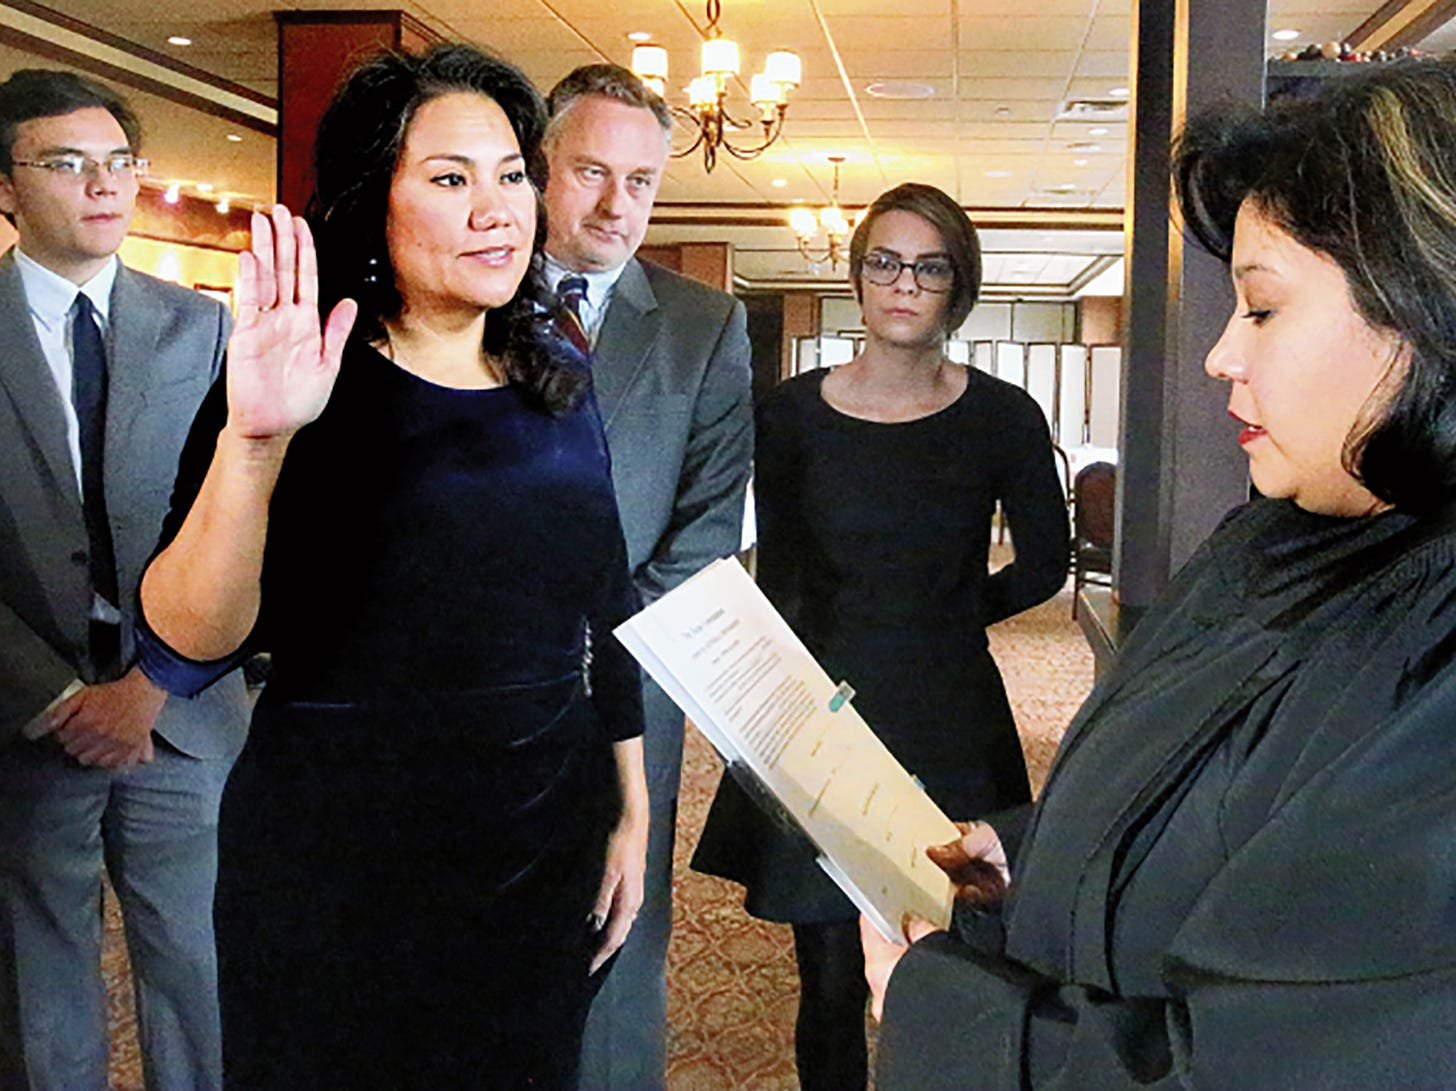 With her family by her side County Judge Veronica Escobas gets sworn in by District Judge Anna Perez after winning reelction.